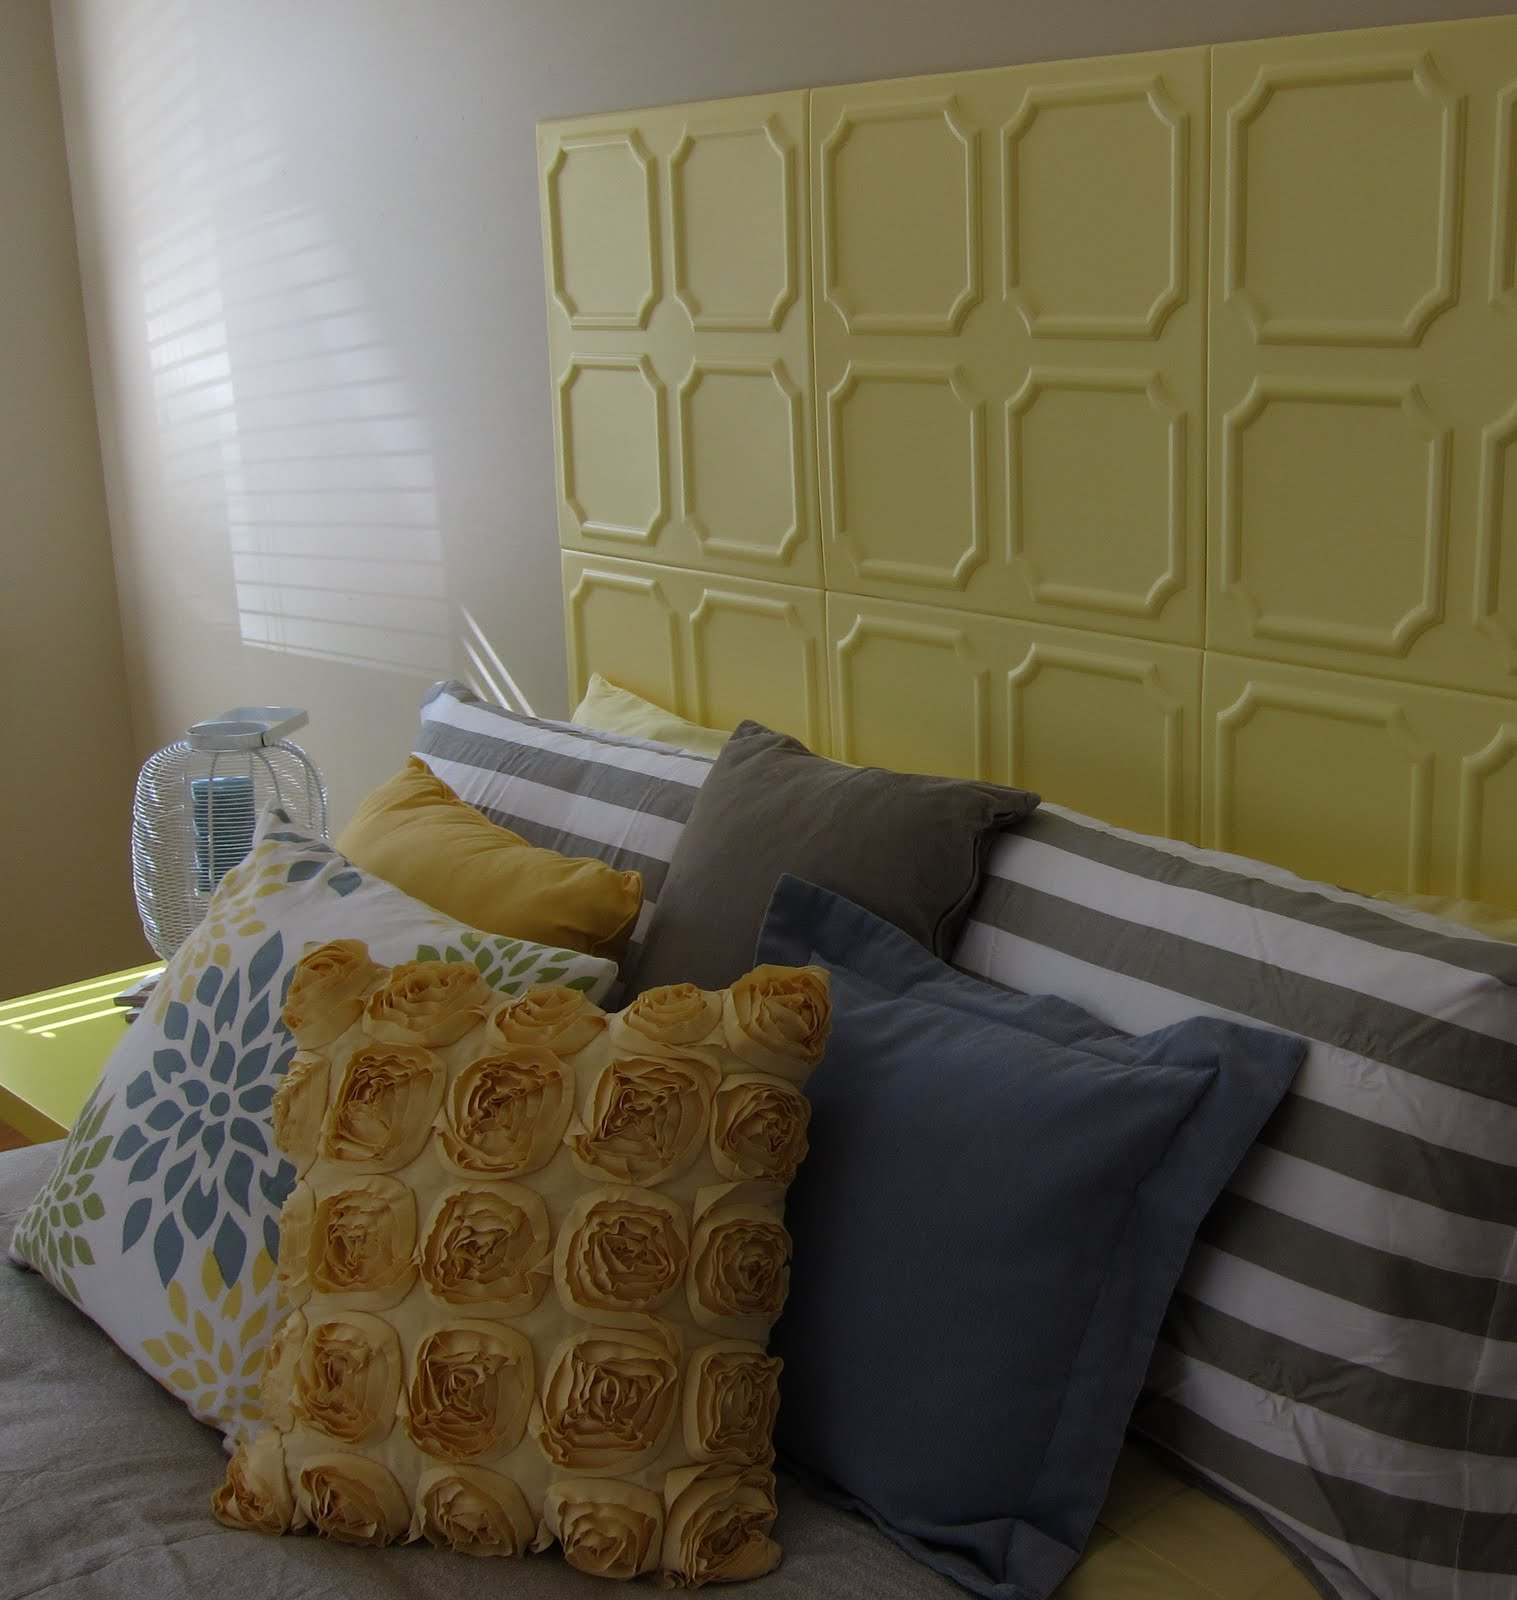 25 cheap and chic diy headboard ideas Homemade headboard ideas cheap